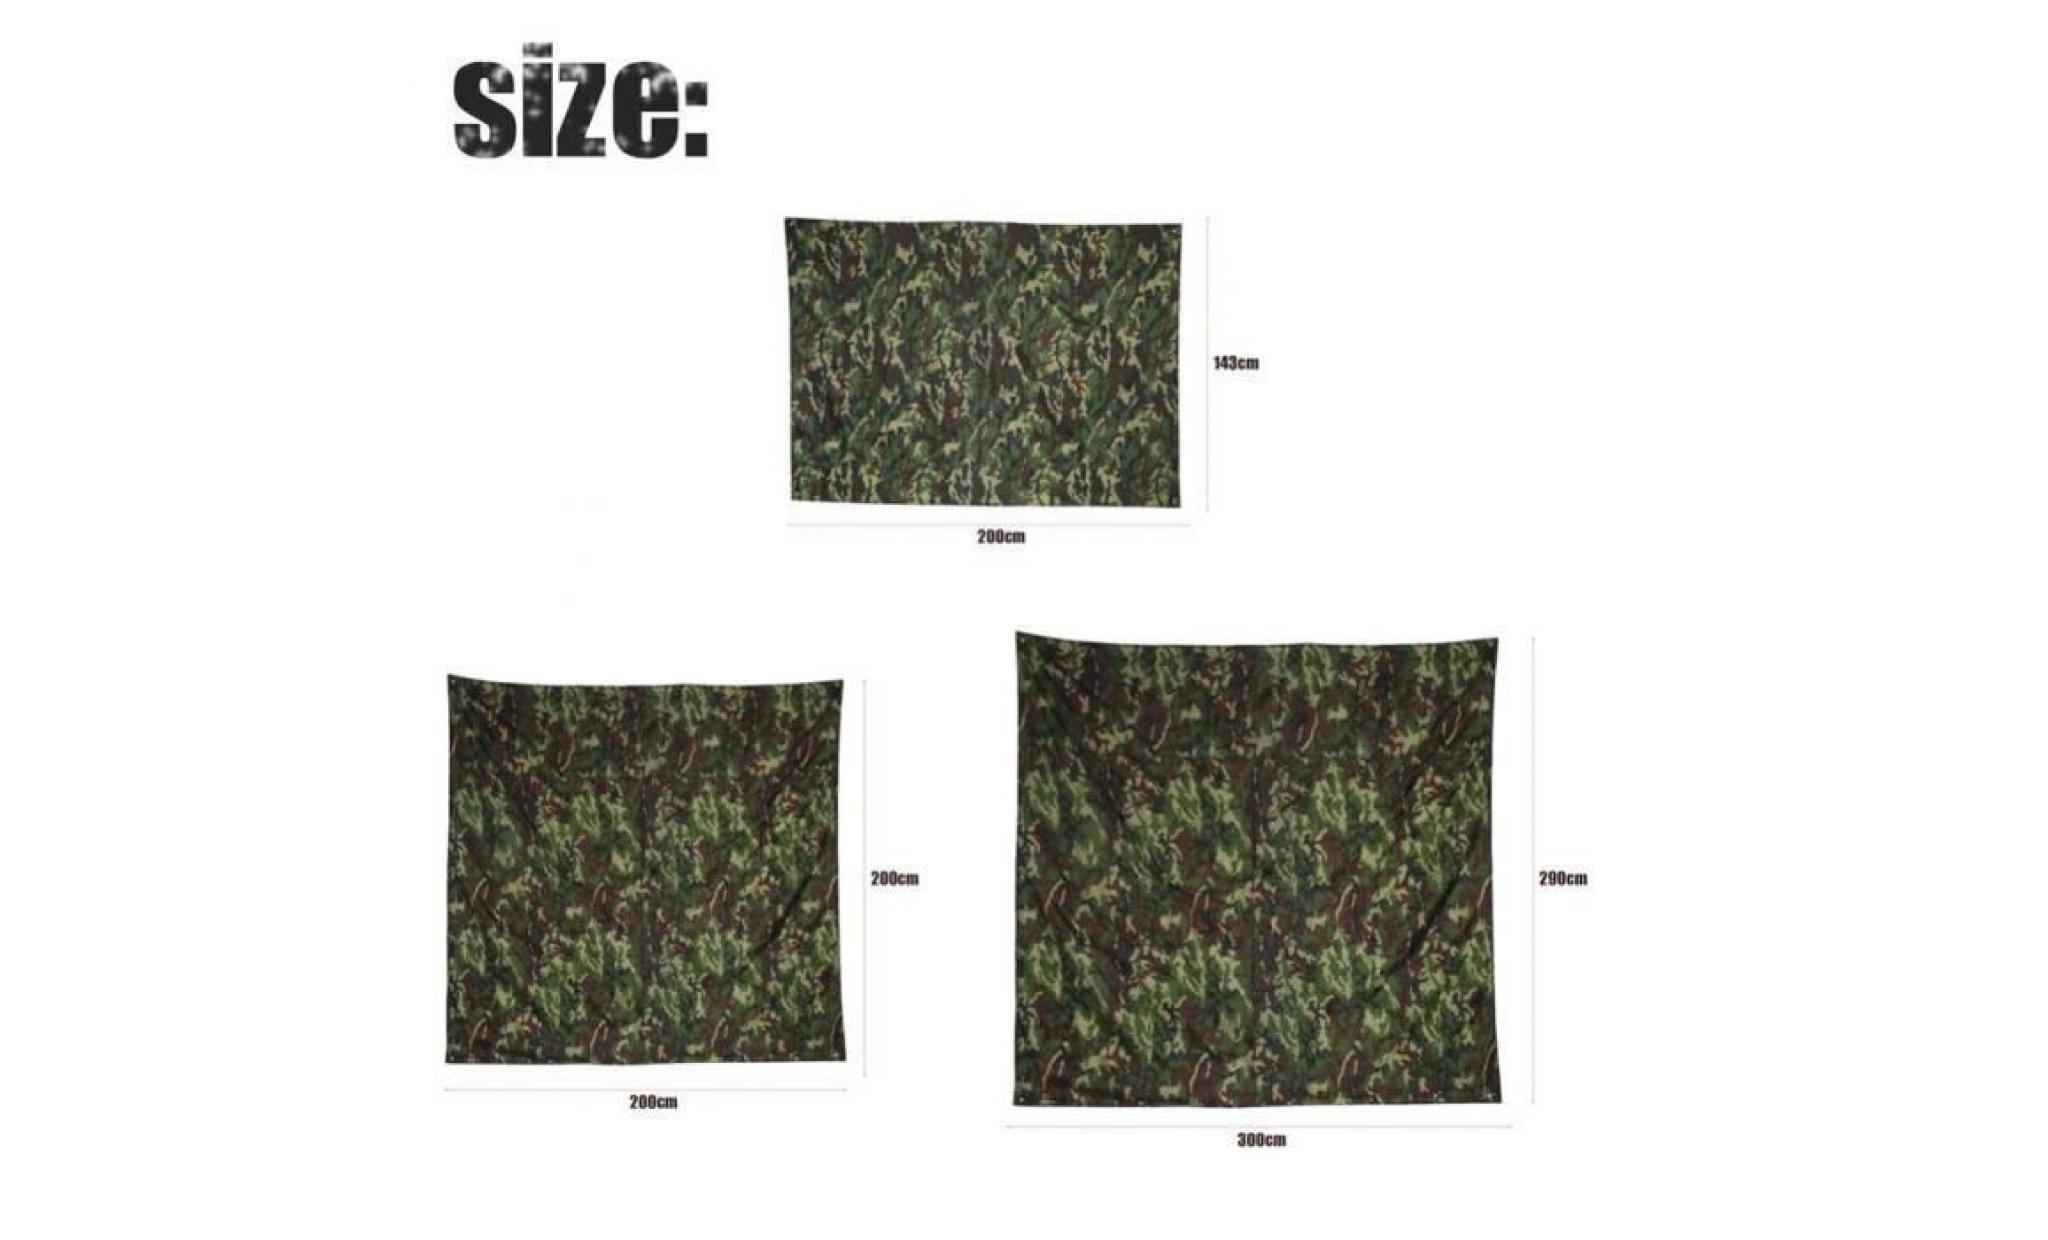 voile d 39 ombrage toile solaire camouflage voile d 39 ombrage. Black Bedroom Furniture Sets. Home Design Ideas